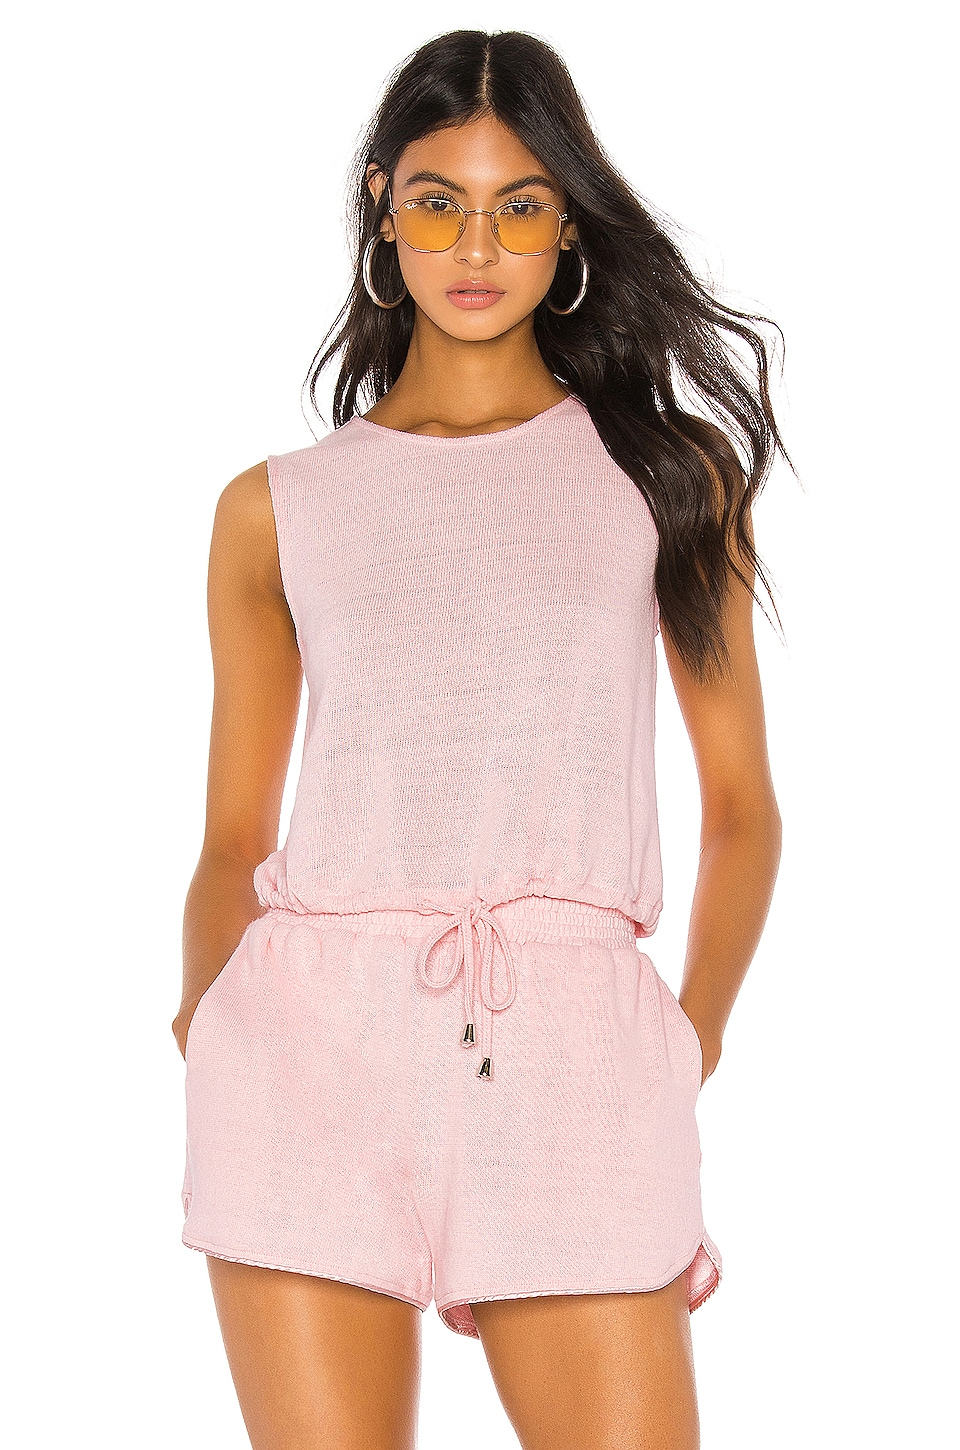 Callahan Coco Tank in Baby Pink